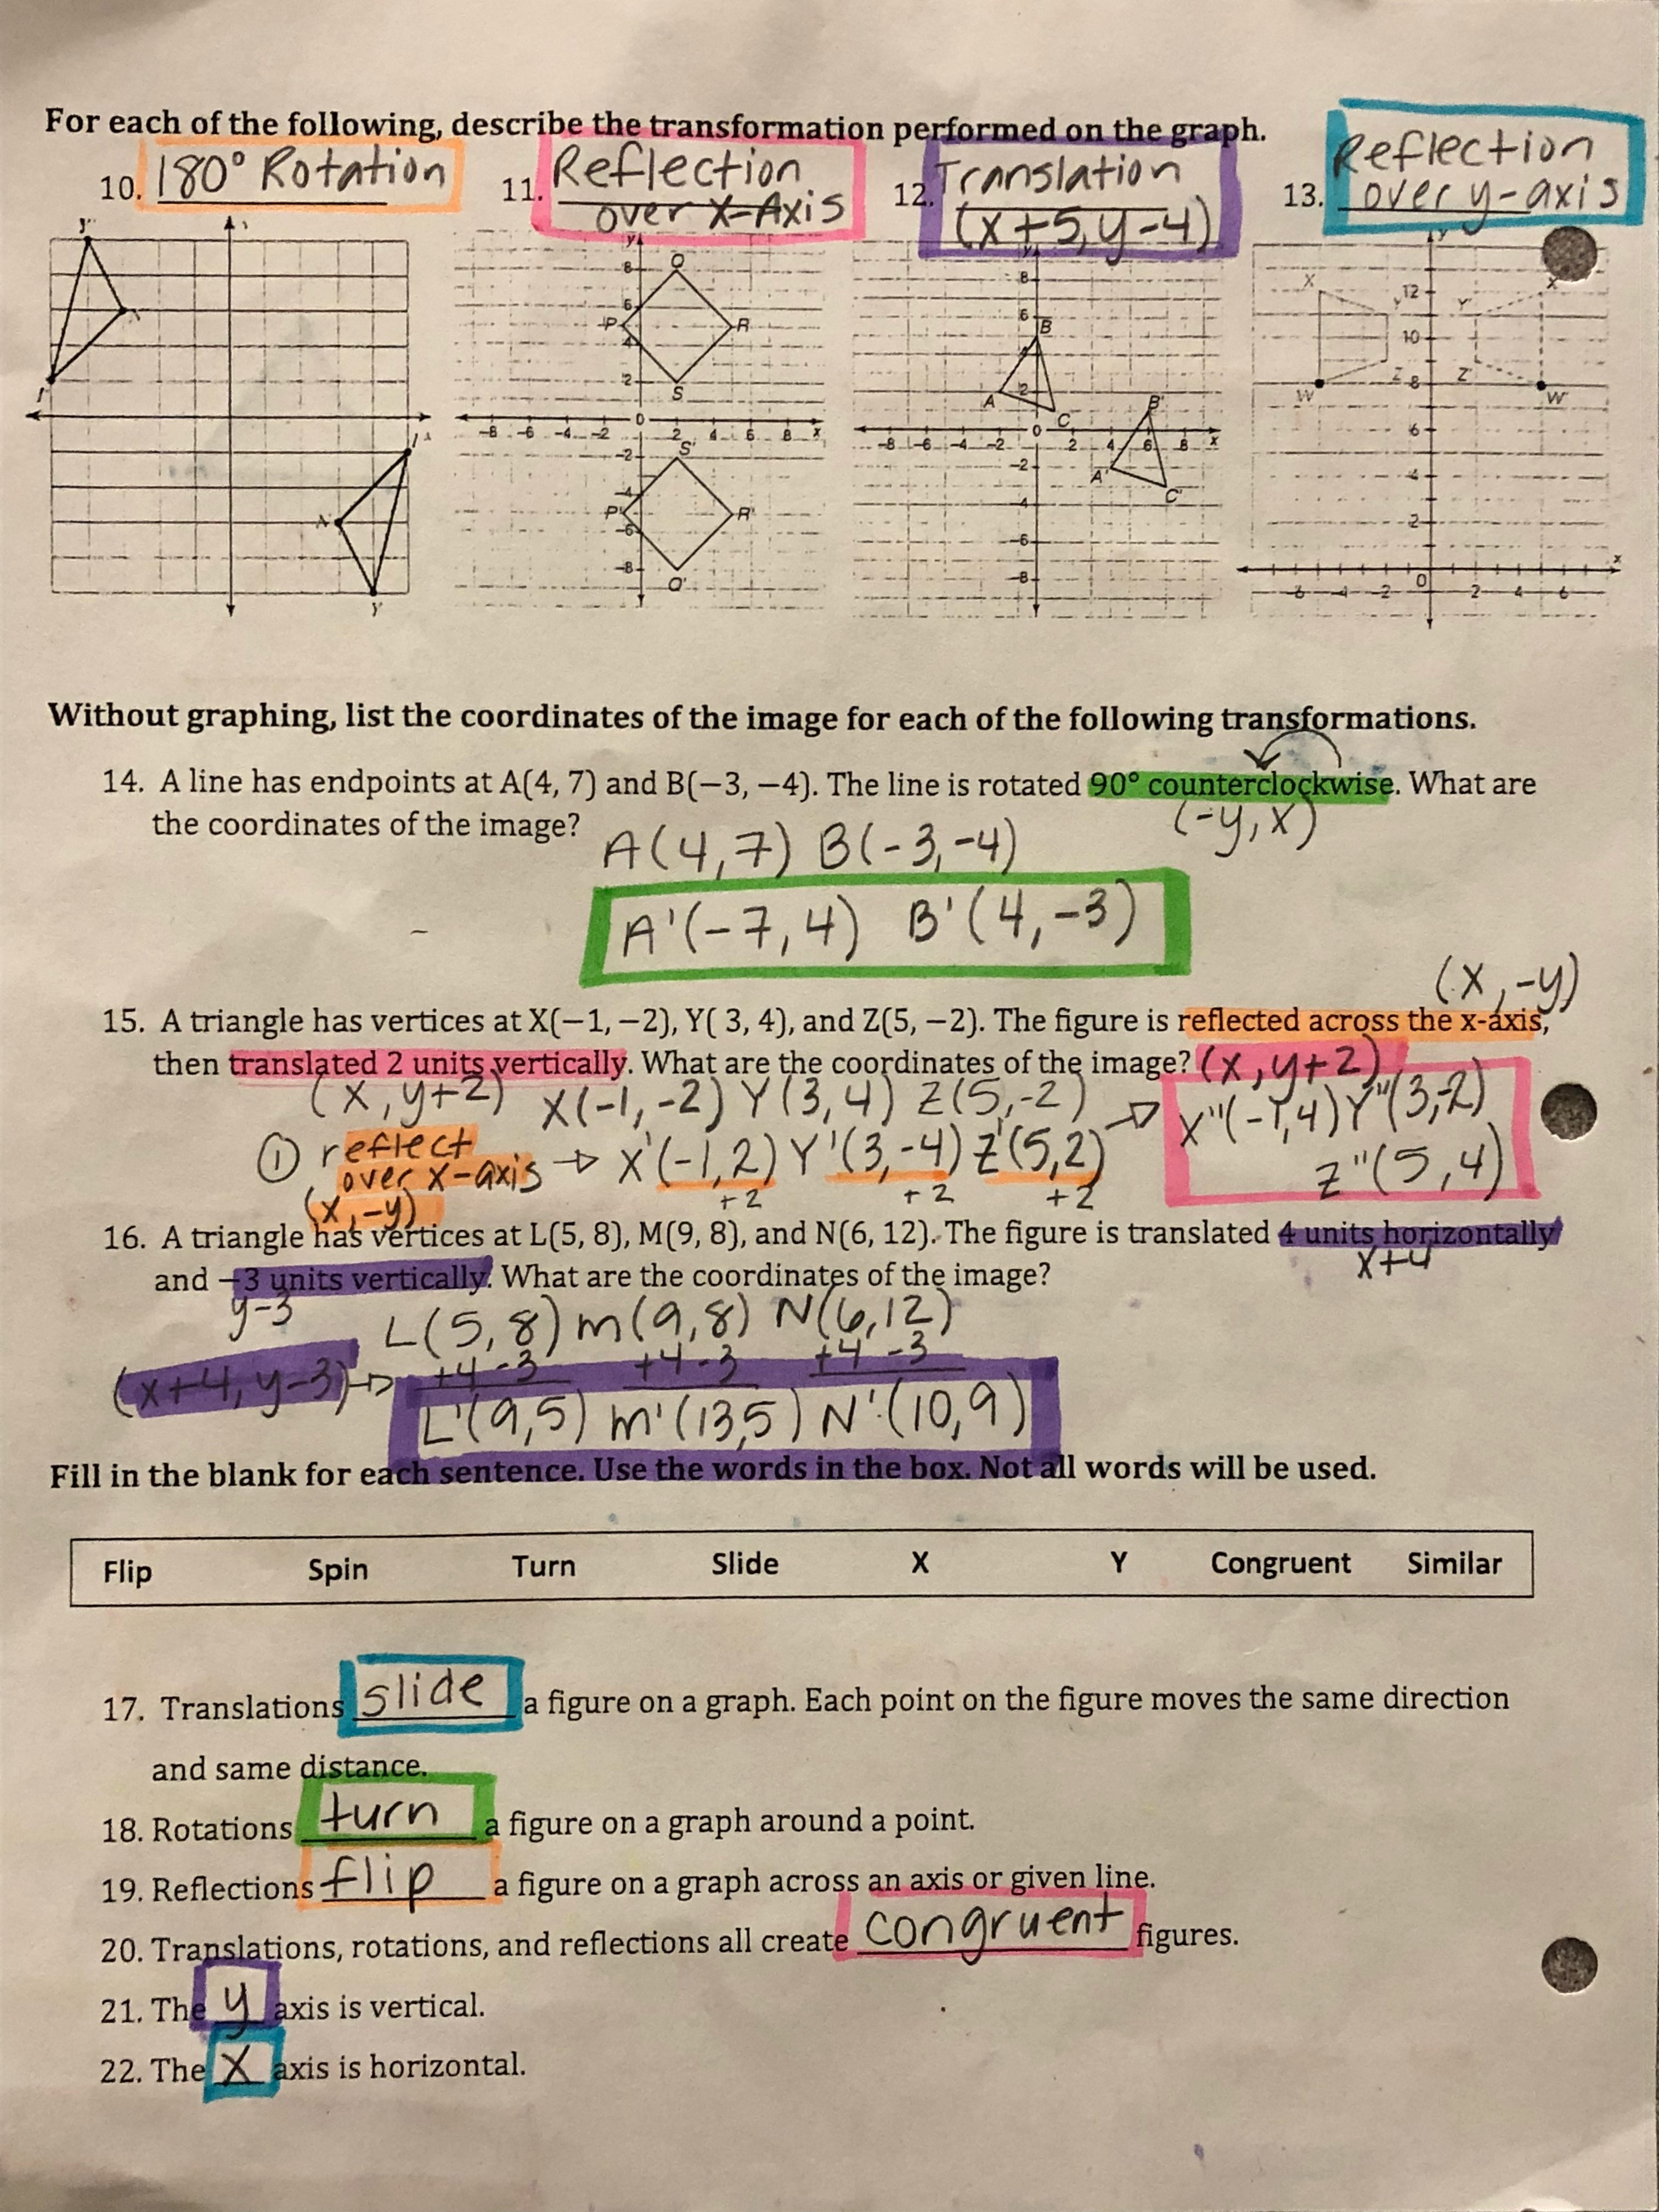 Gina Wilson Unit 2 Homework 8 Answers Adding And Subtracting